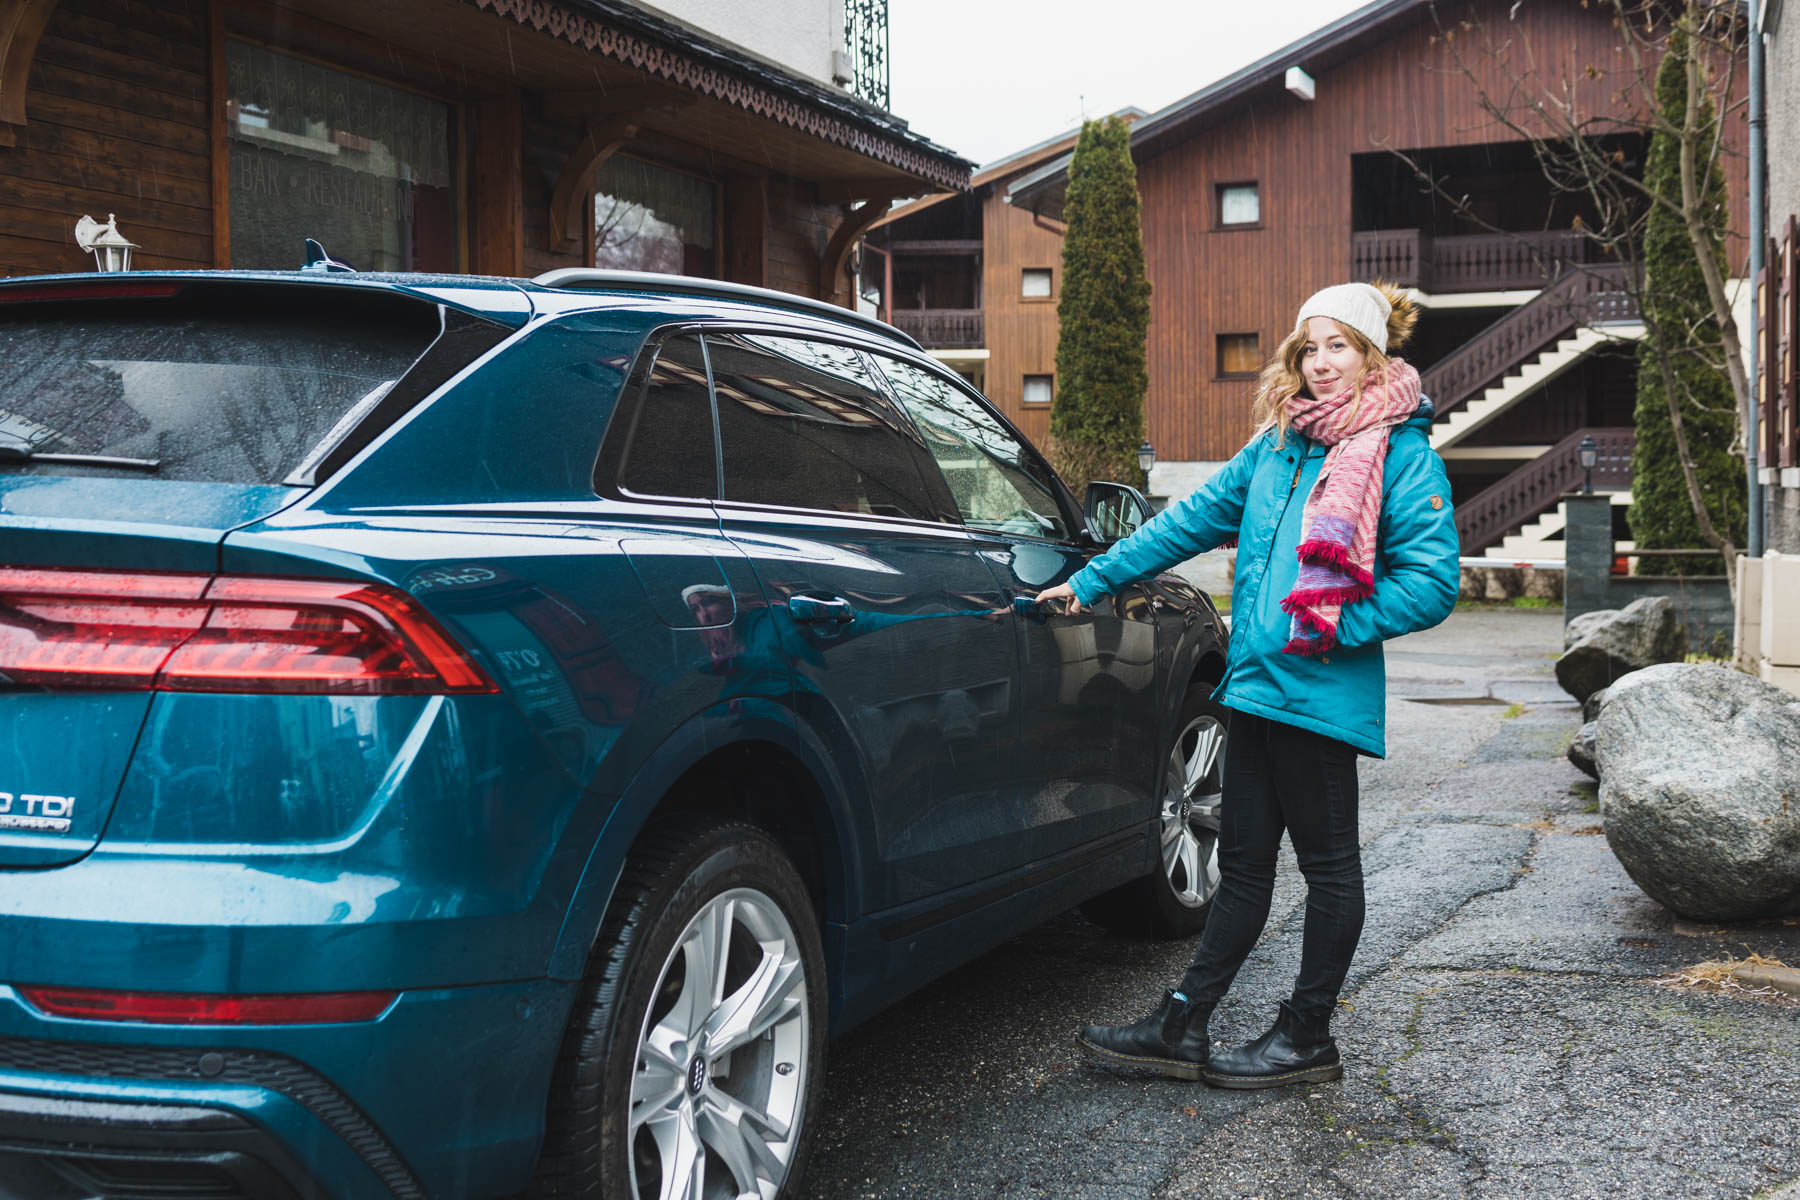 best-of-the-alps-audi-q8-car-megeve-chamonix-mont-blanc-france-crans-montana-grindelwald-eiger-switzerland-food-foodie-where-to-eat-best-tips-recommendation-guide-travel-2018-107.jpg